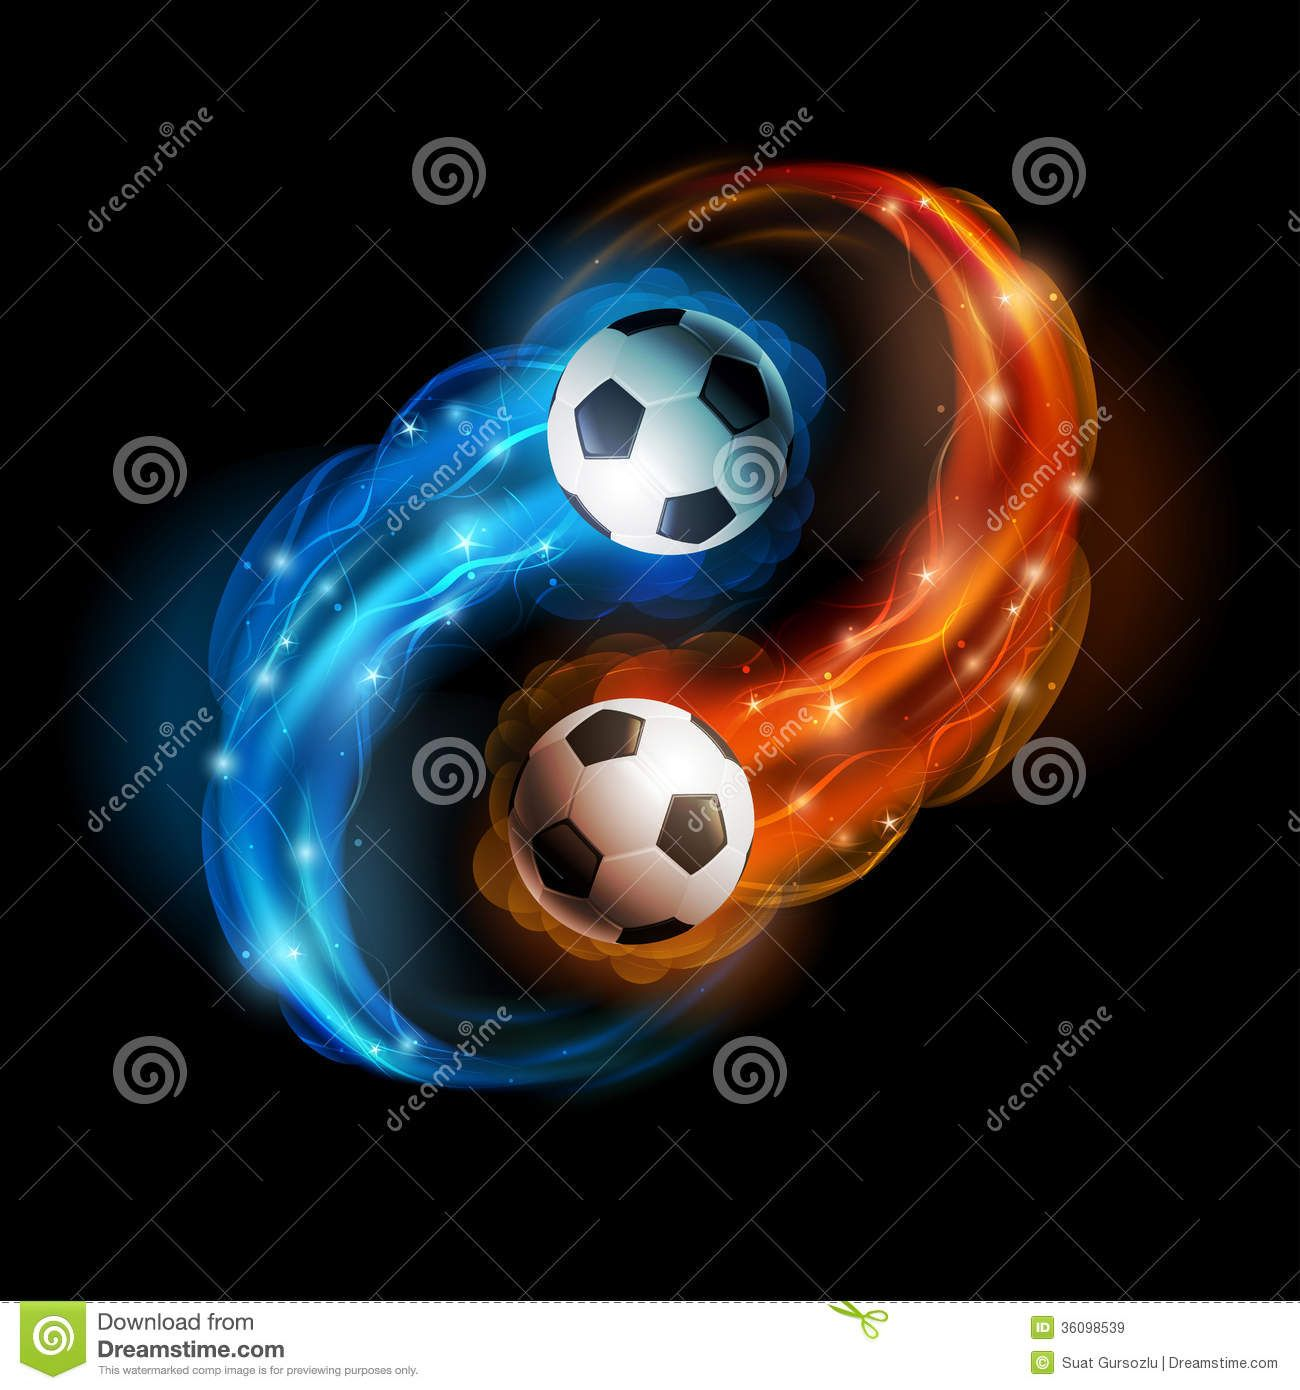 Soccer Balls In Flames And Lights Against